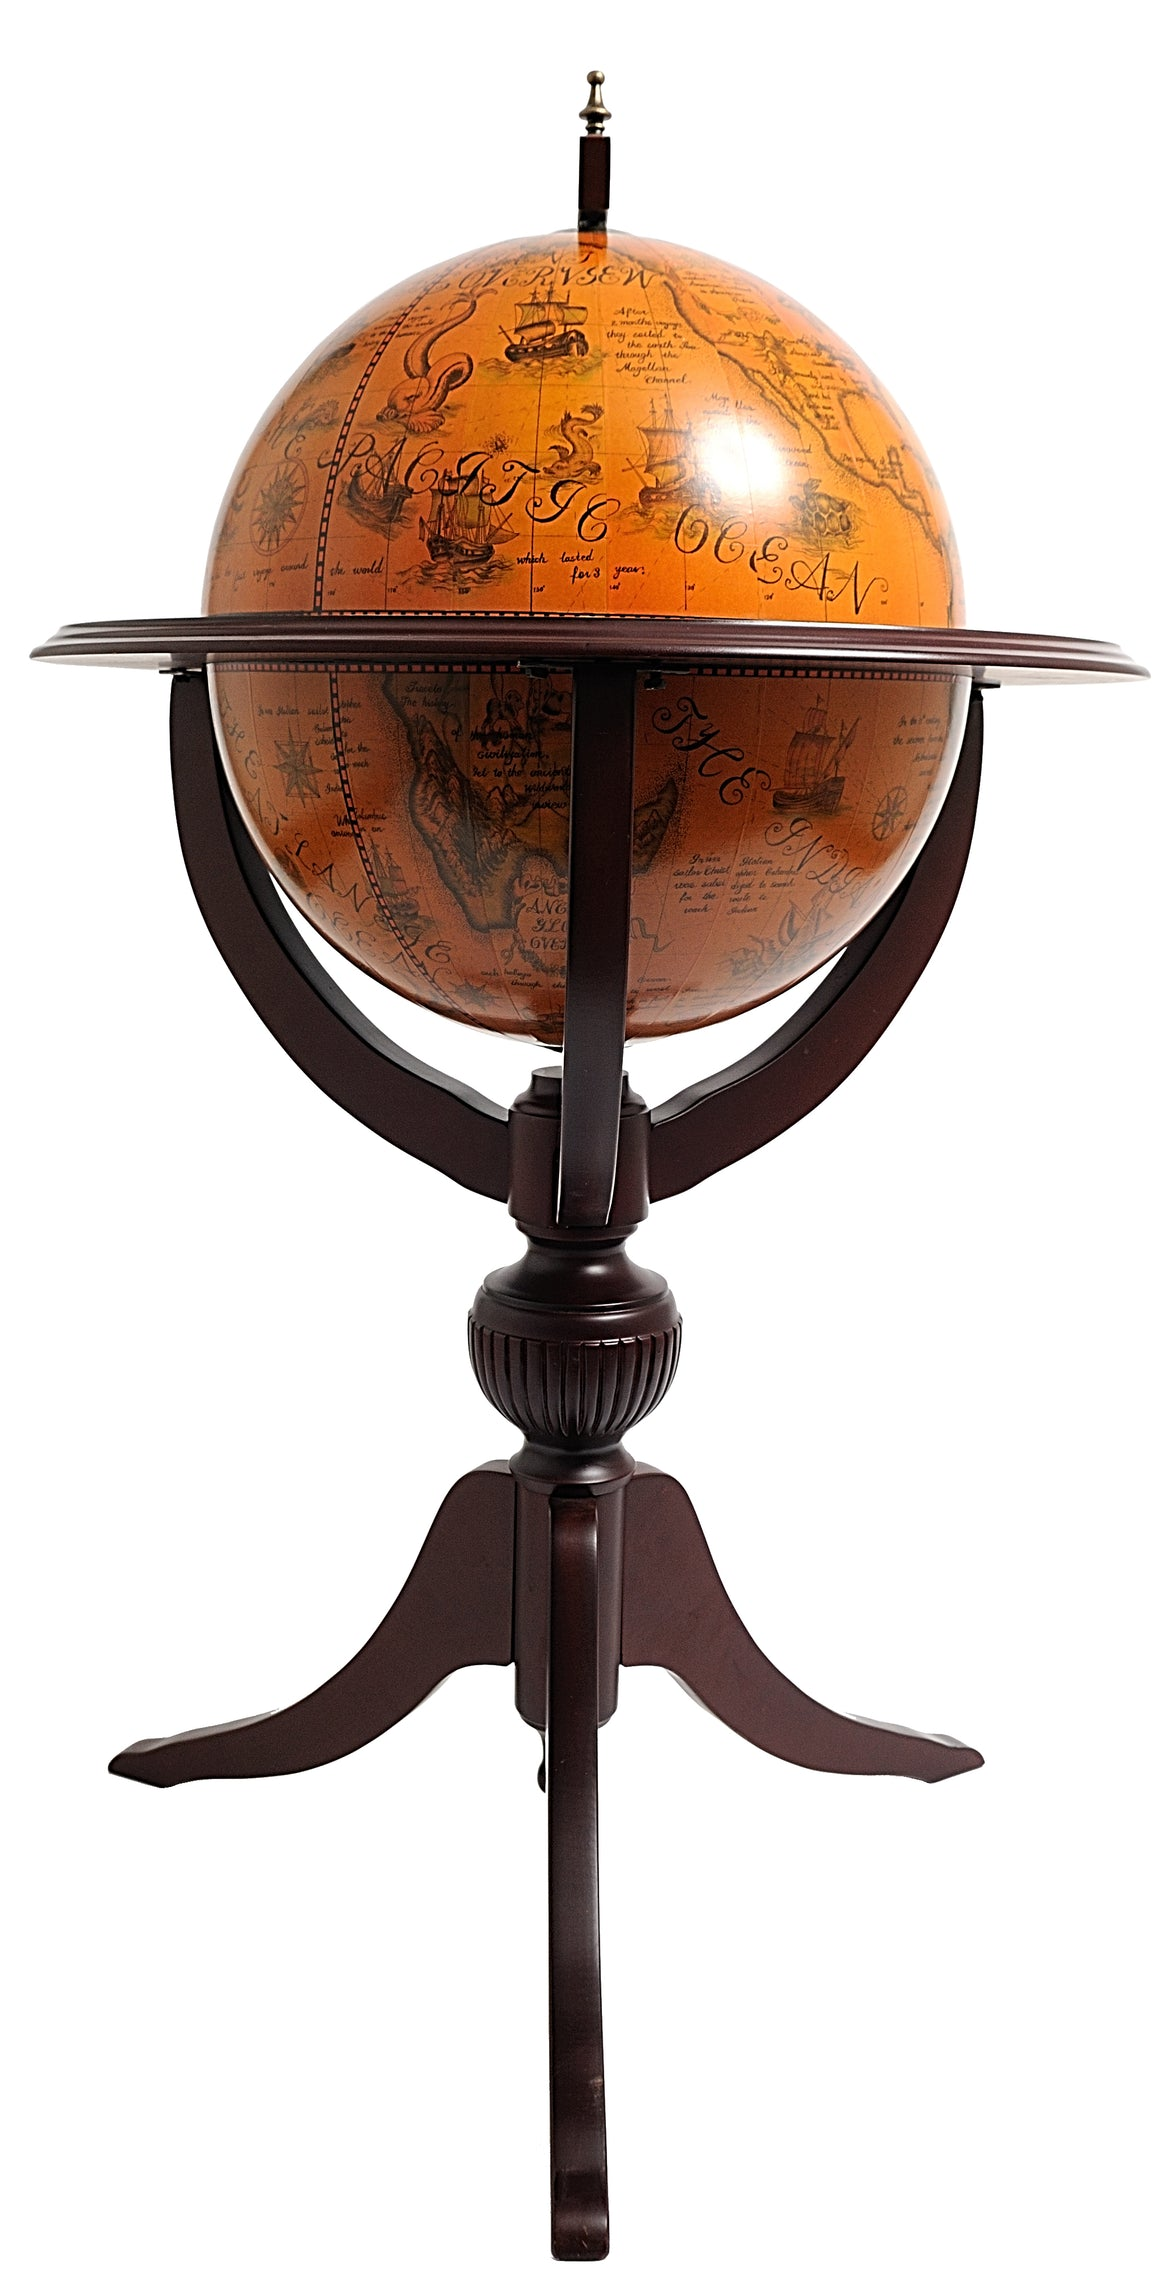 Old Modern Handicrafts World Globe Bar 17 3/4 inch - 3 legs - Decor and Gifts Galore